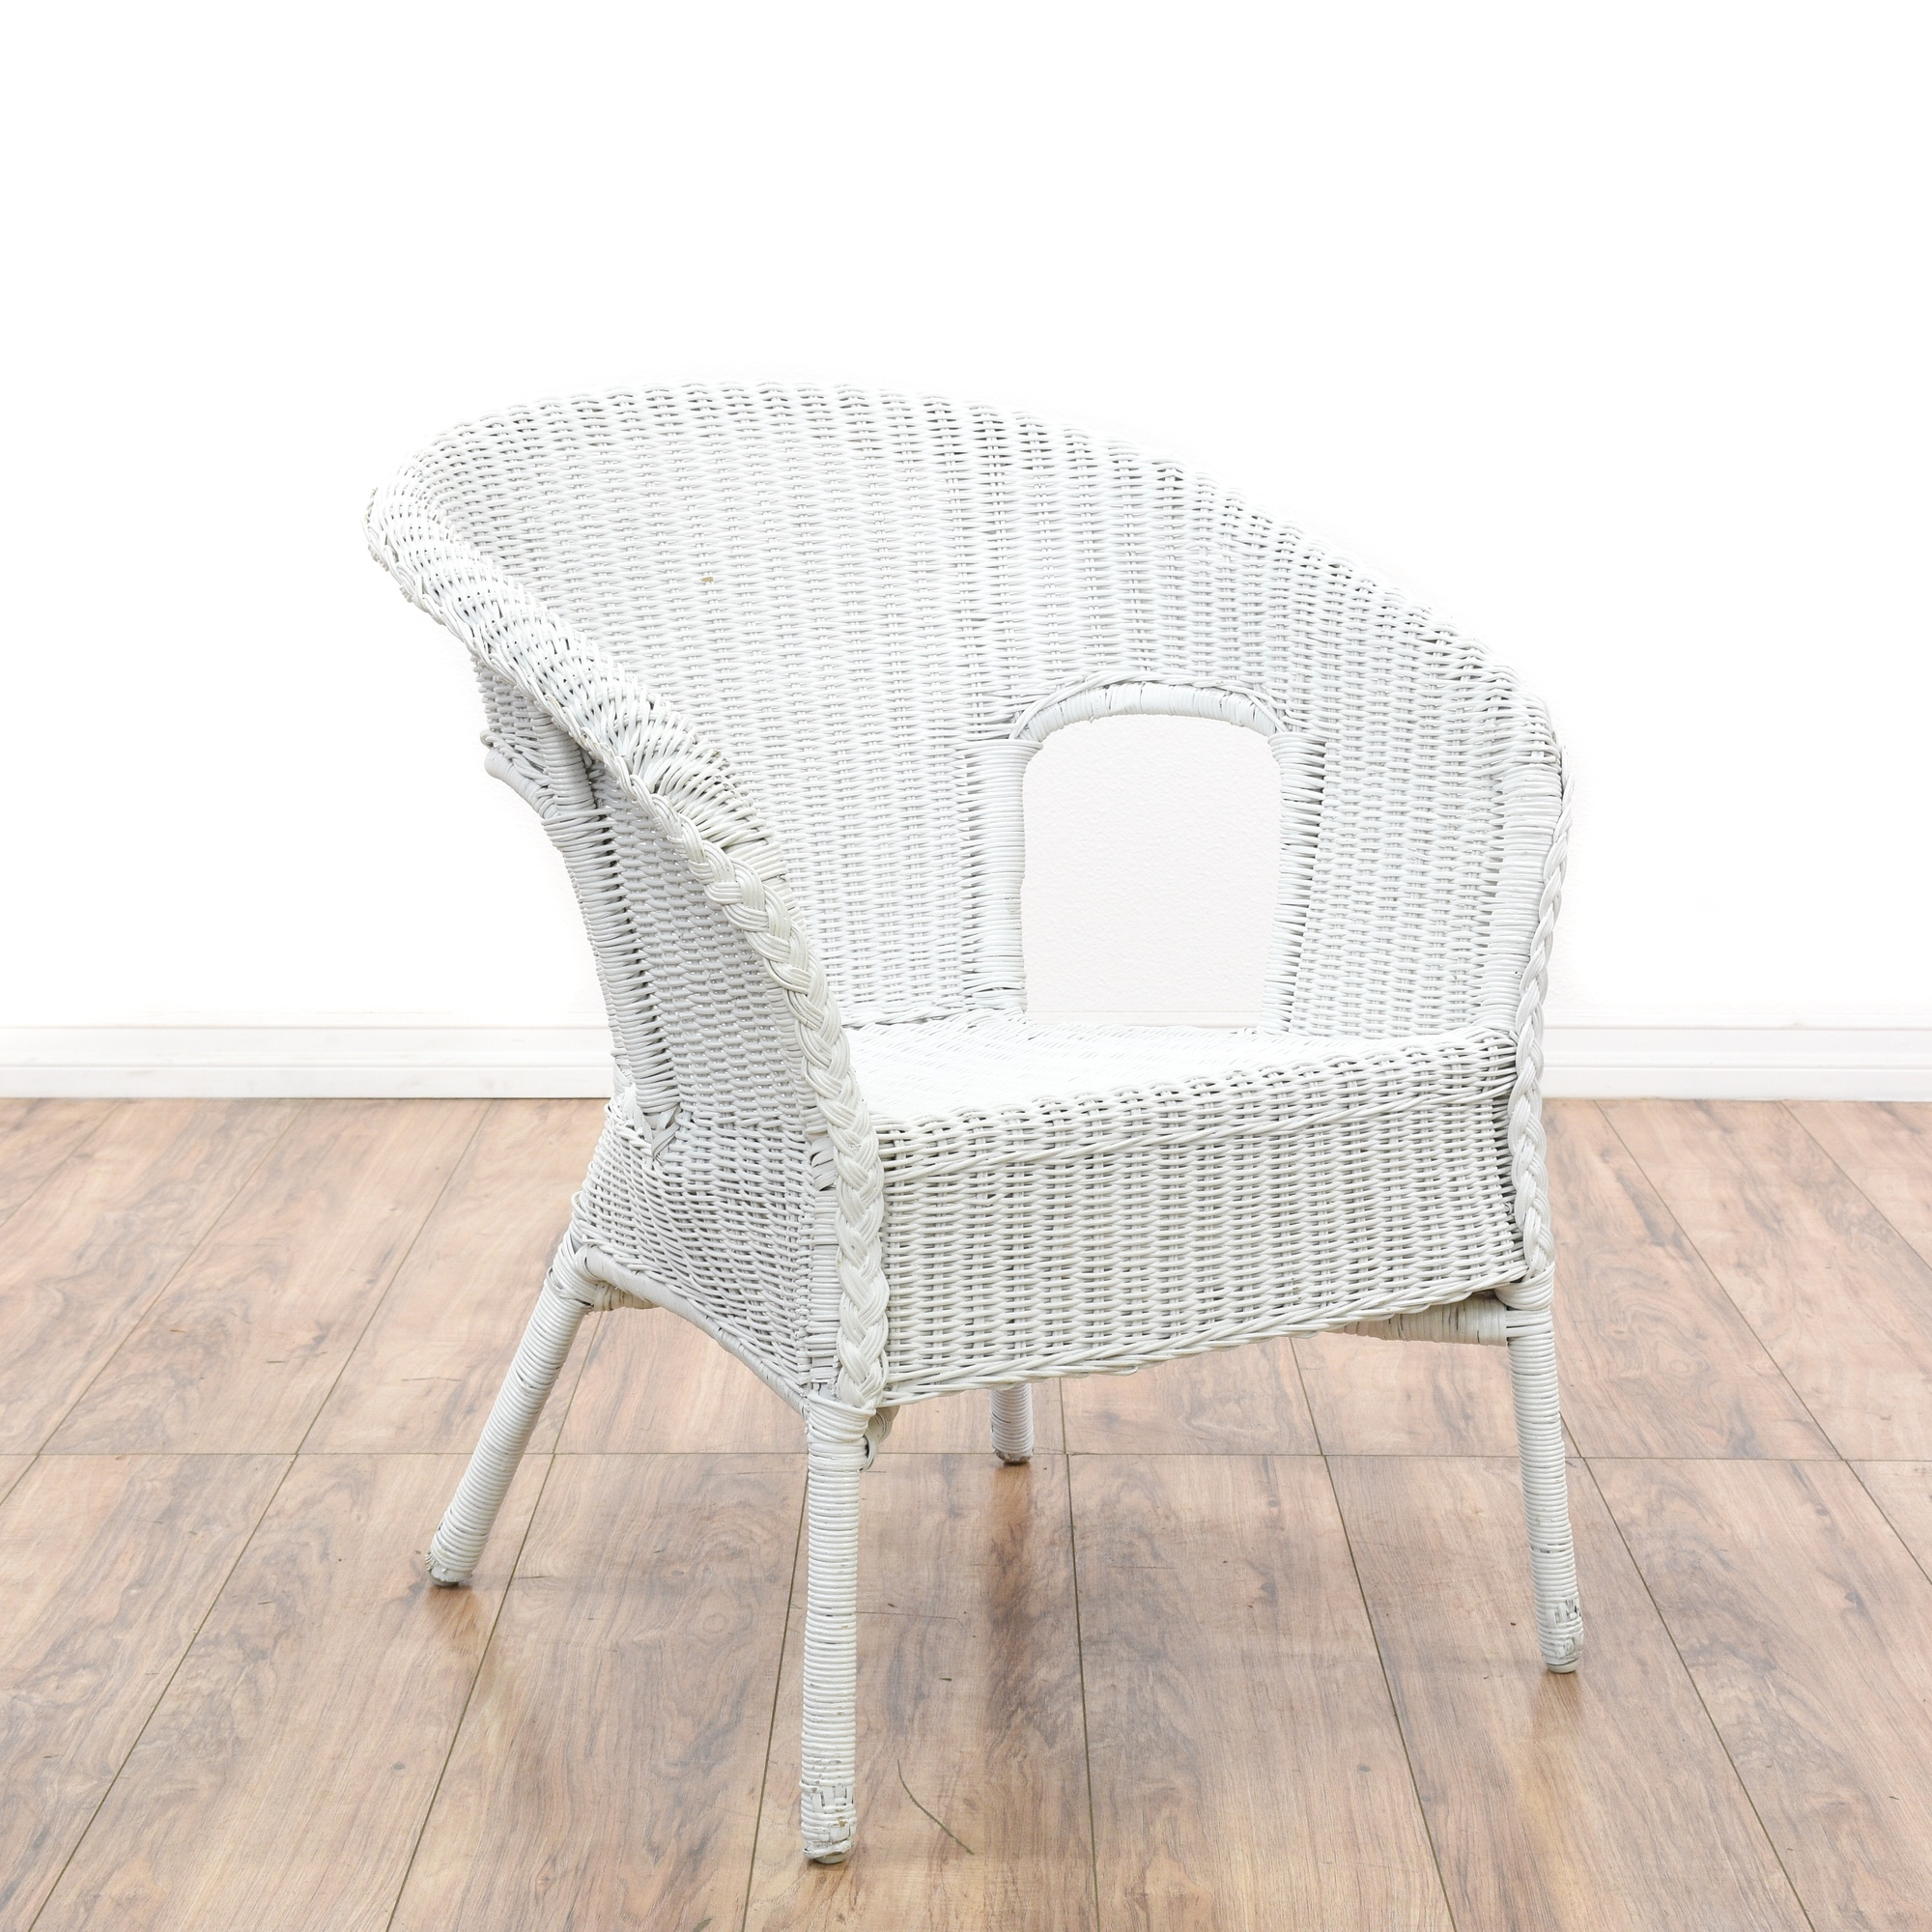 Patio Chairs Los Angeles: Pair Of White Wicker Patio Chairs